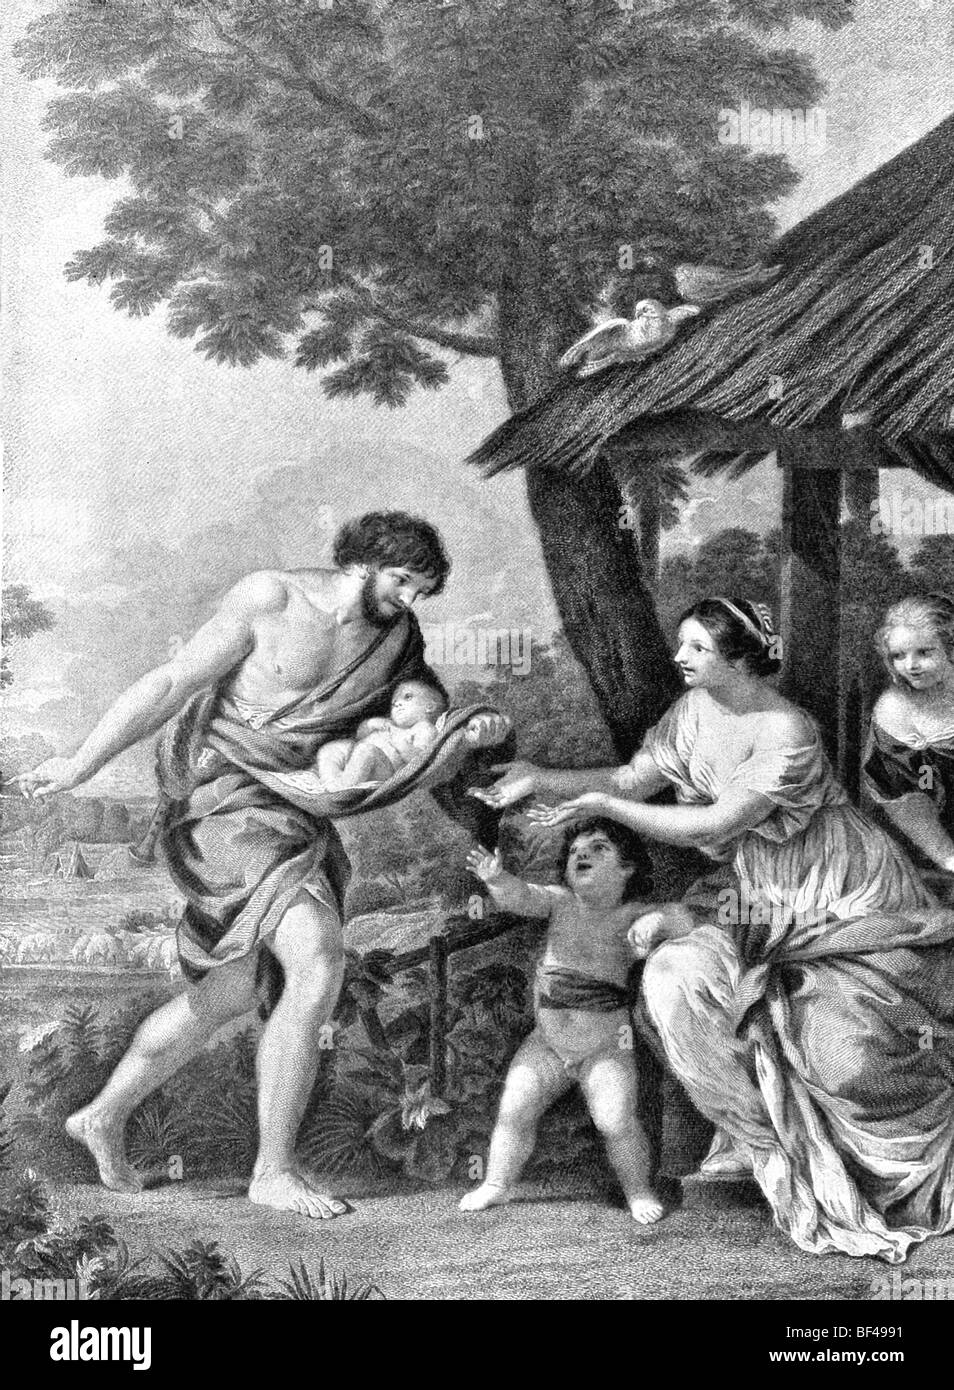 The shepherd Faustulus (left) brings the twins Romulus and Remus home to his wife. - Stock Image